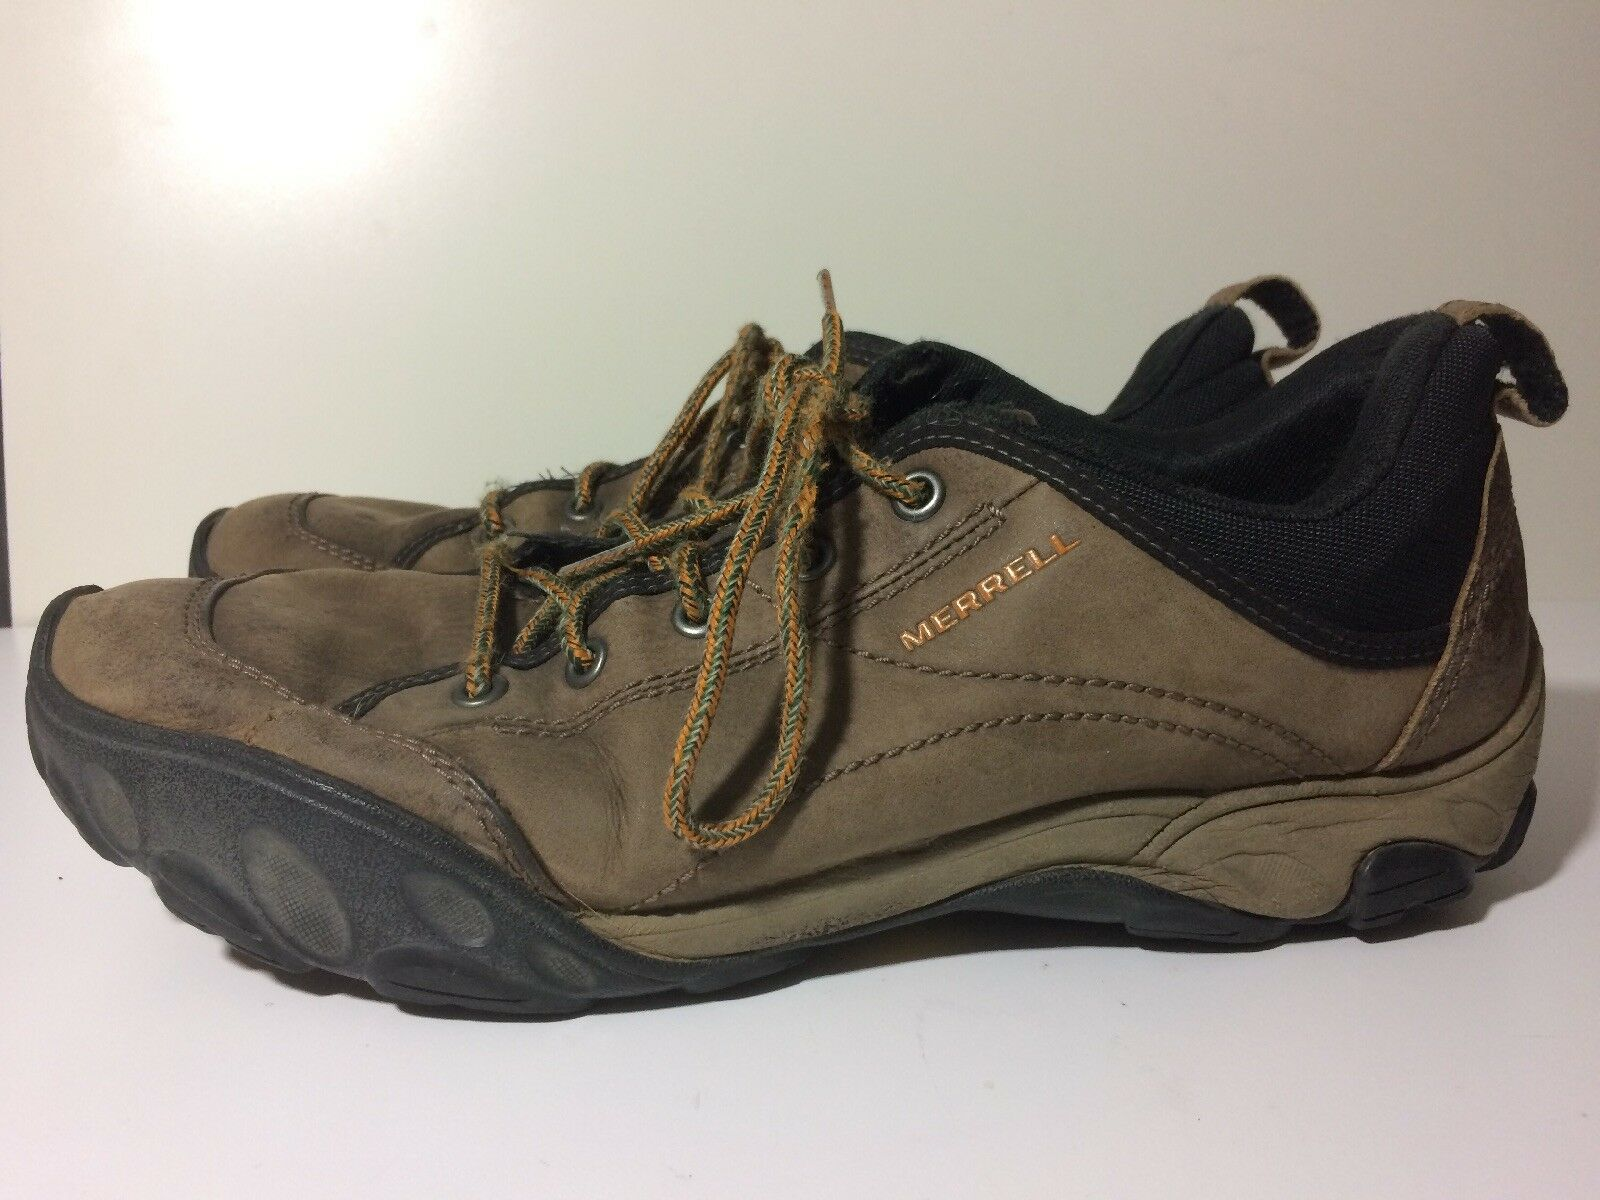 Men's Merrell Sight Brown size 13 Leather shoes Lace-Up Vibram J75137 SIGHT Hikin